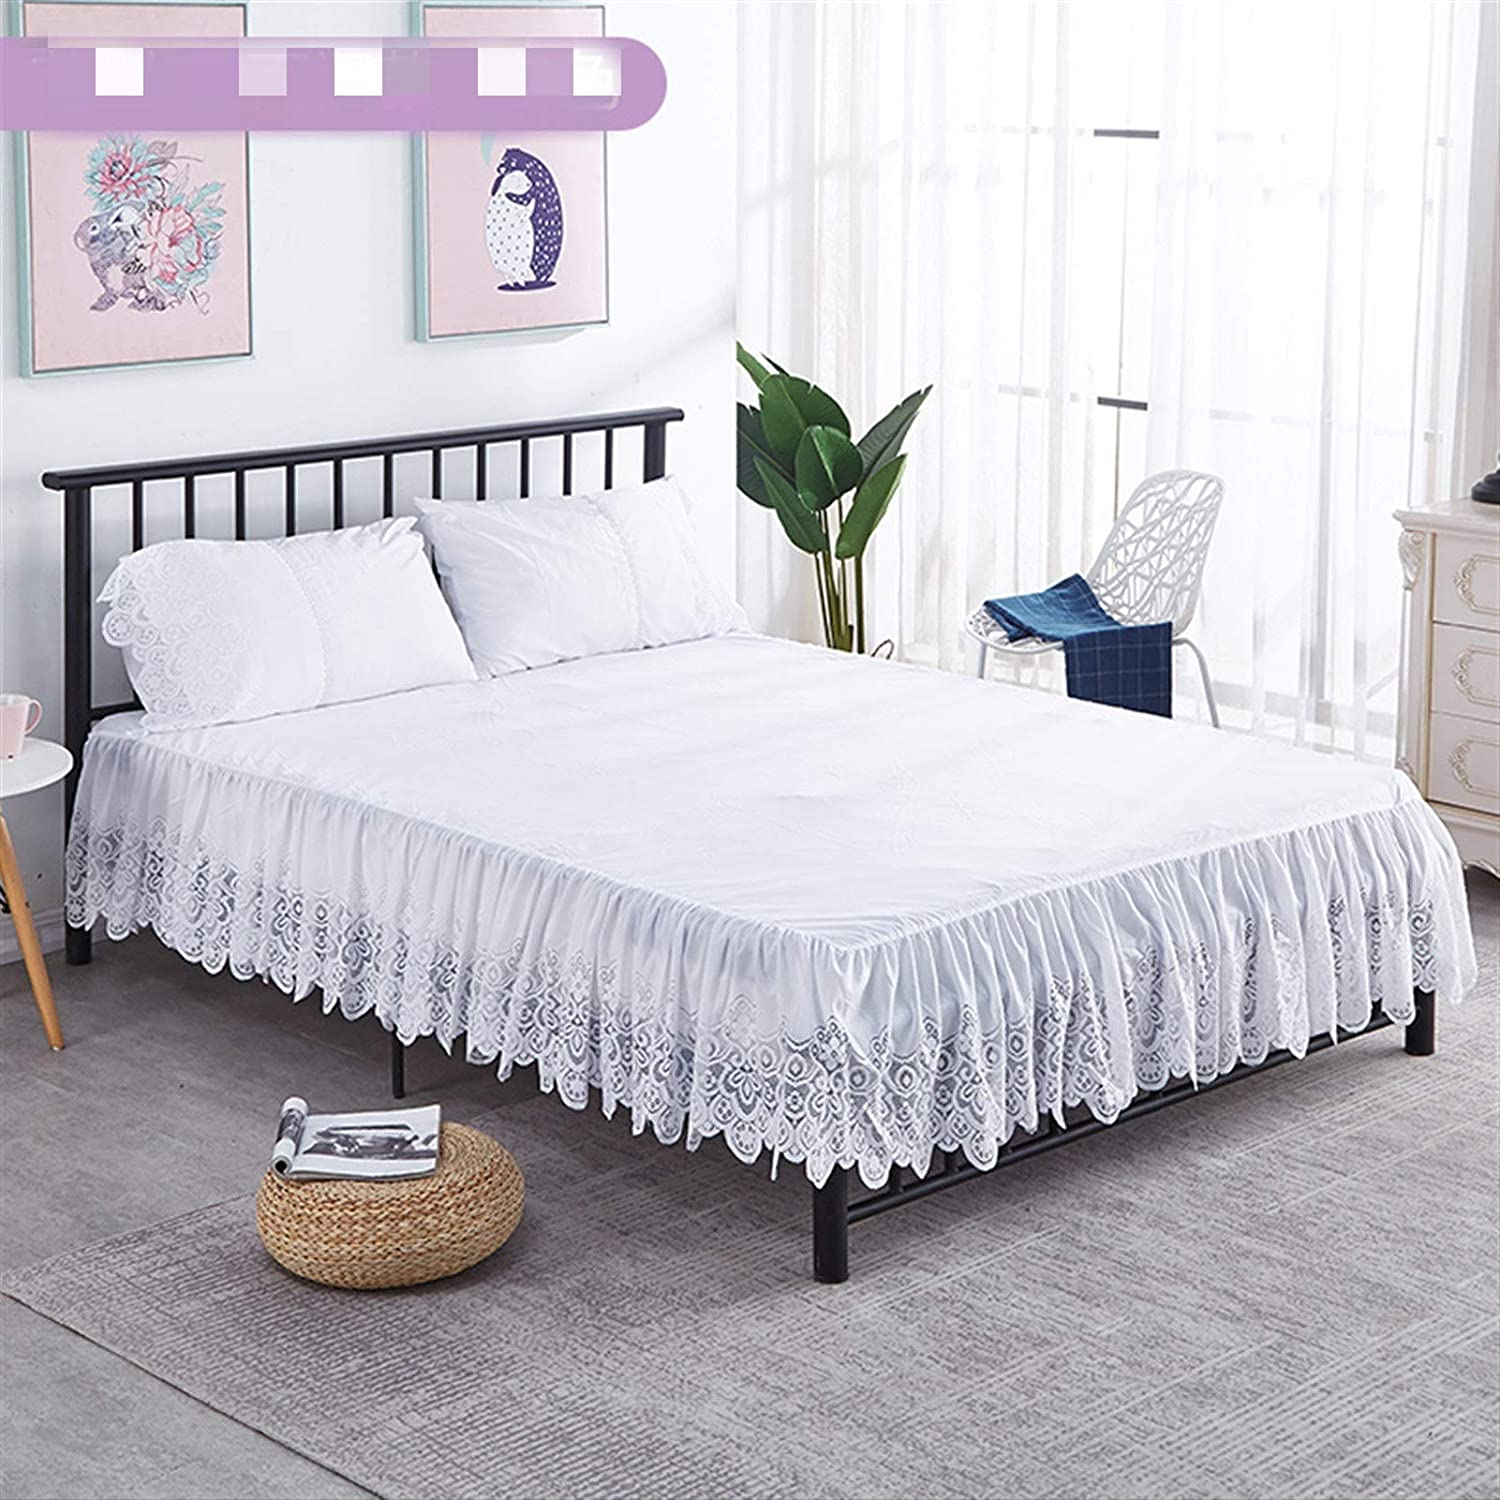 2021 spring and summer new Cash special price Durable Popular Pleated Base Platform He Sheets 15 Inch Valance